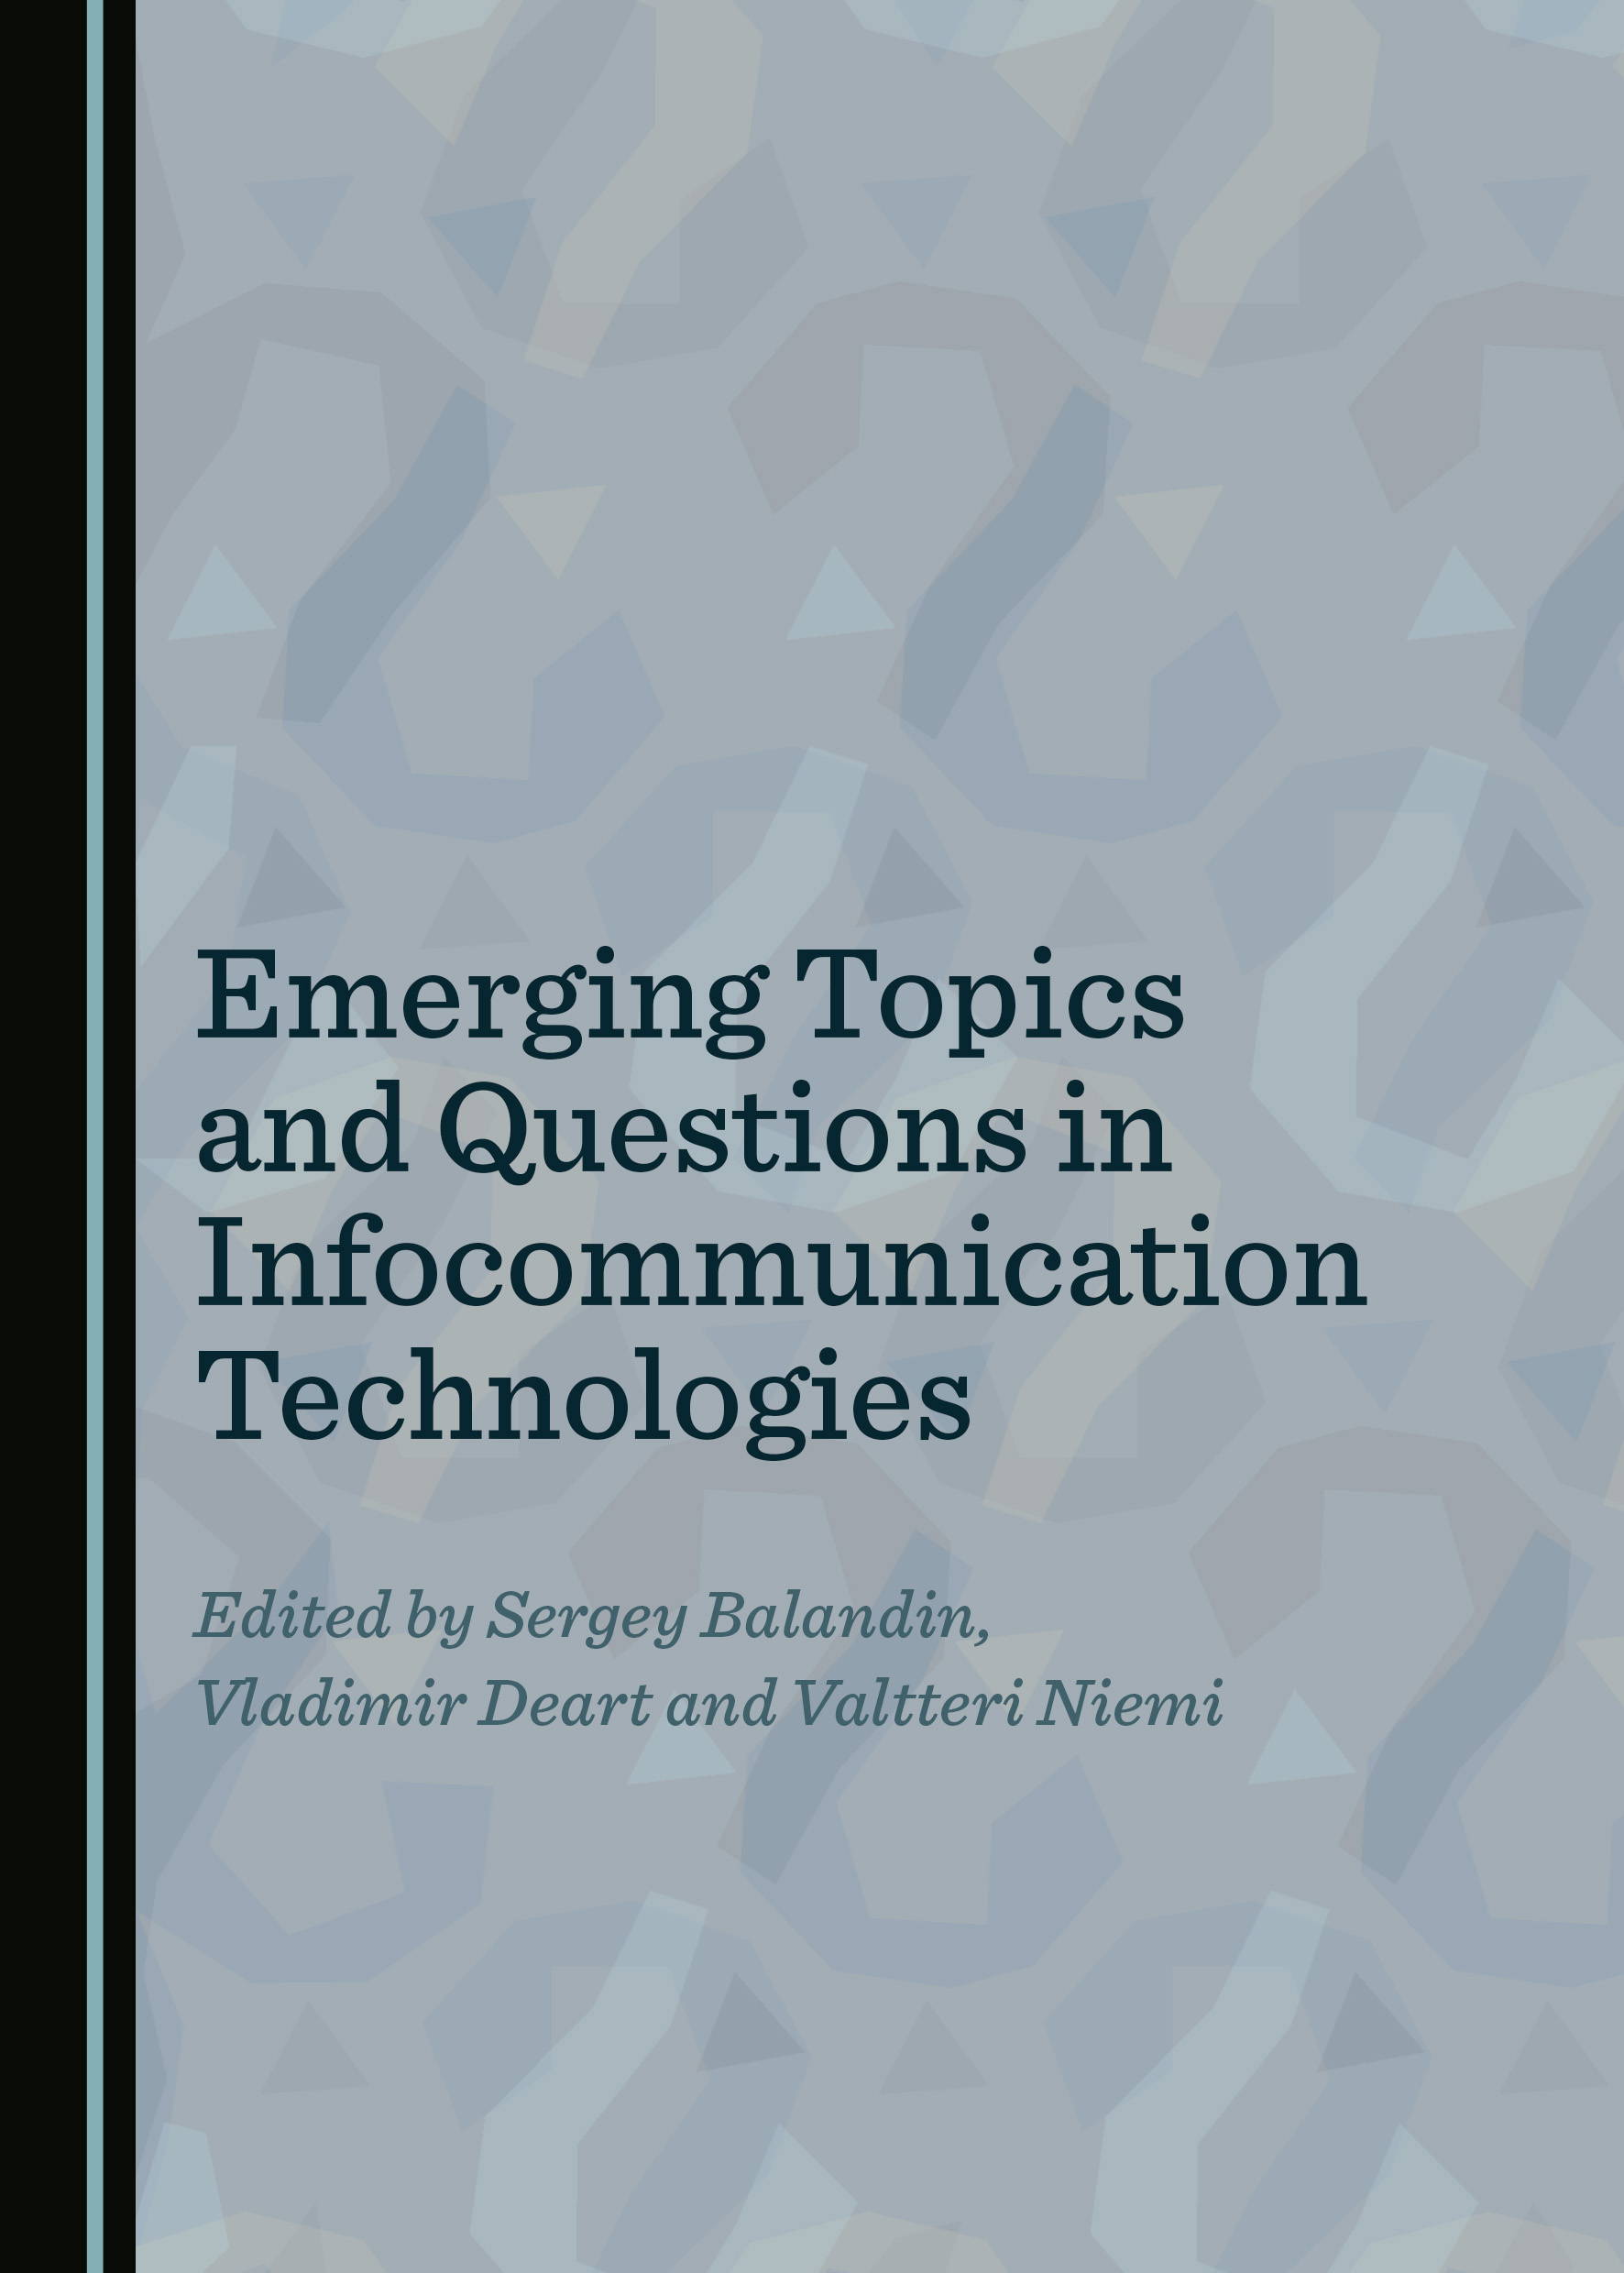 Emerging Topics and Questions in Infocommunication Technologies